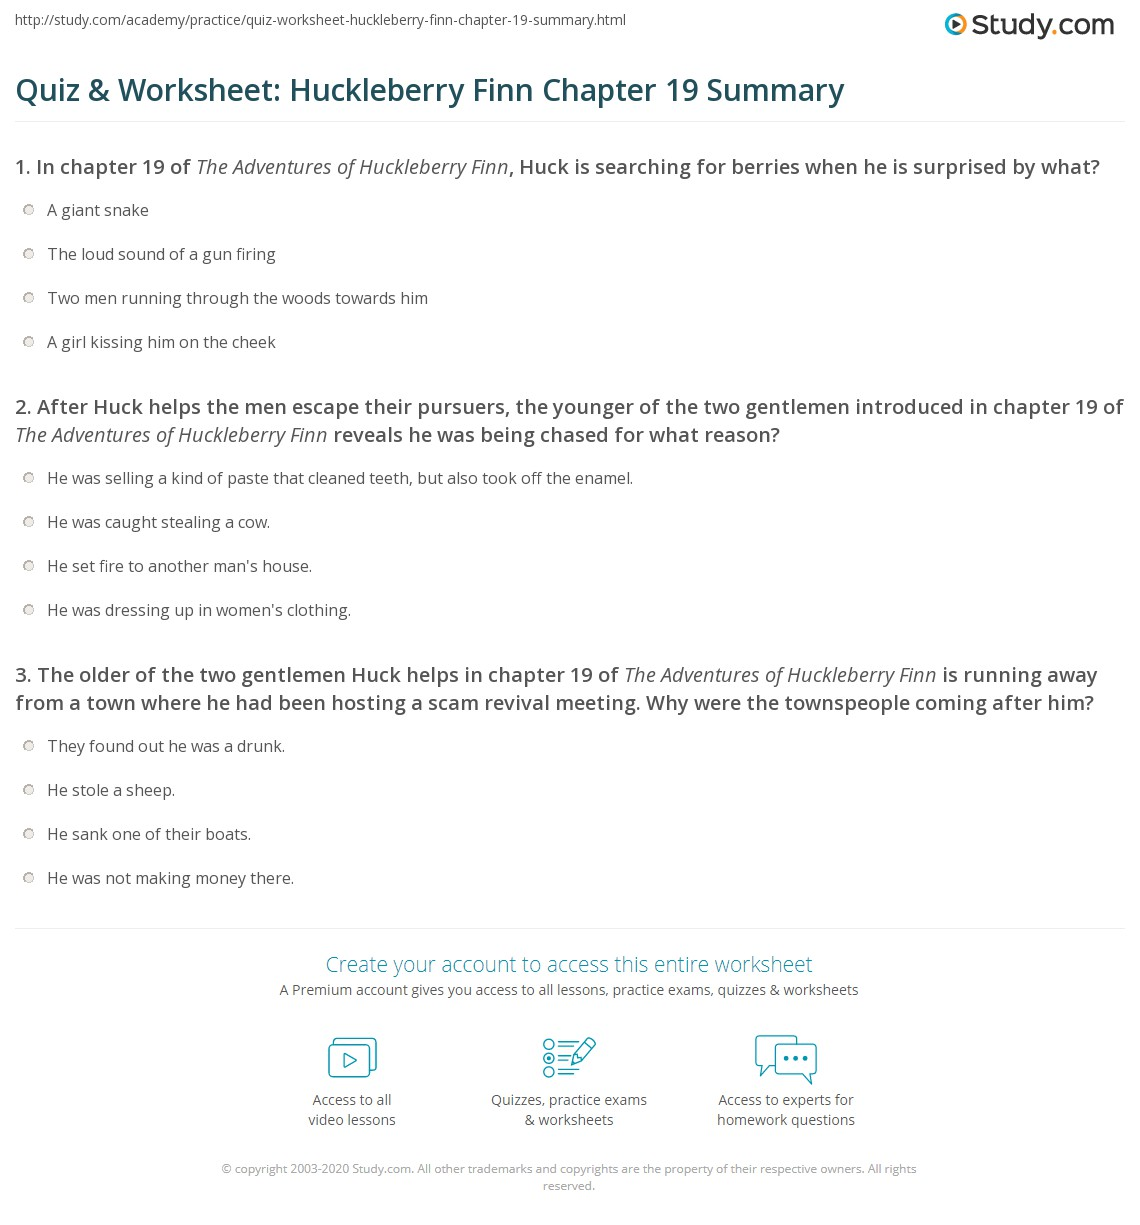 adventures of huckleberry finn essay pap in adventures of  quiz worksheet huckleberry finn chapter summary com print the adventures of huckleberry finn chapter 19 summary